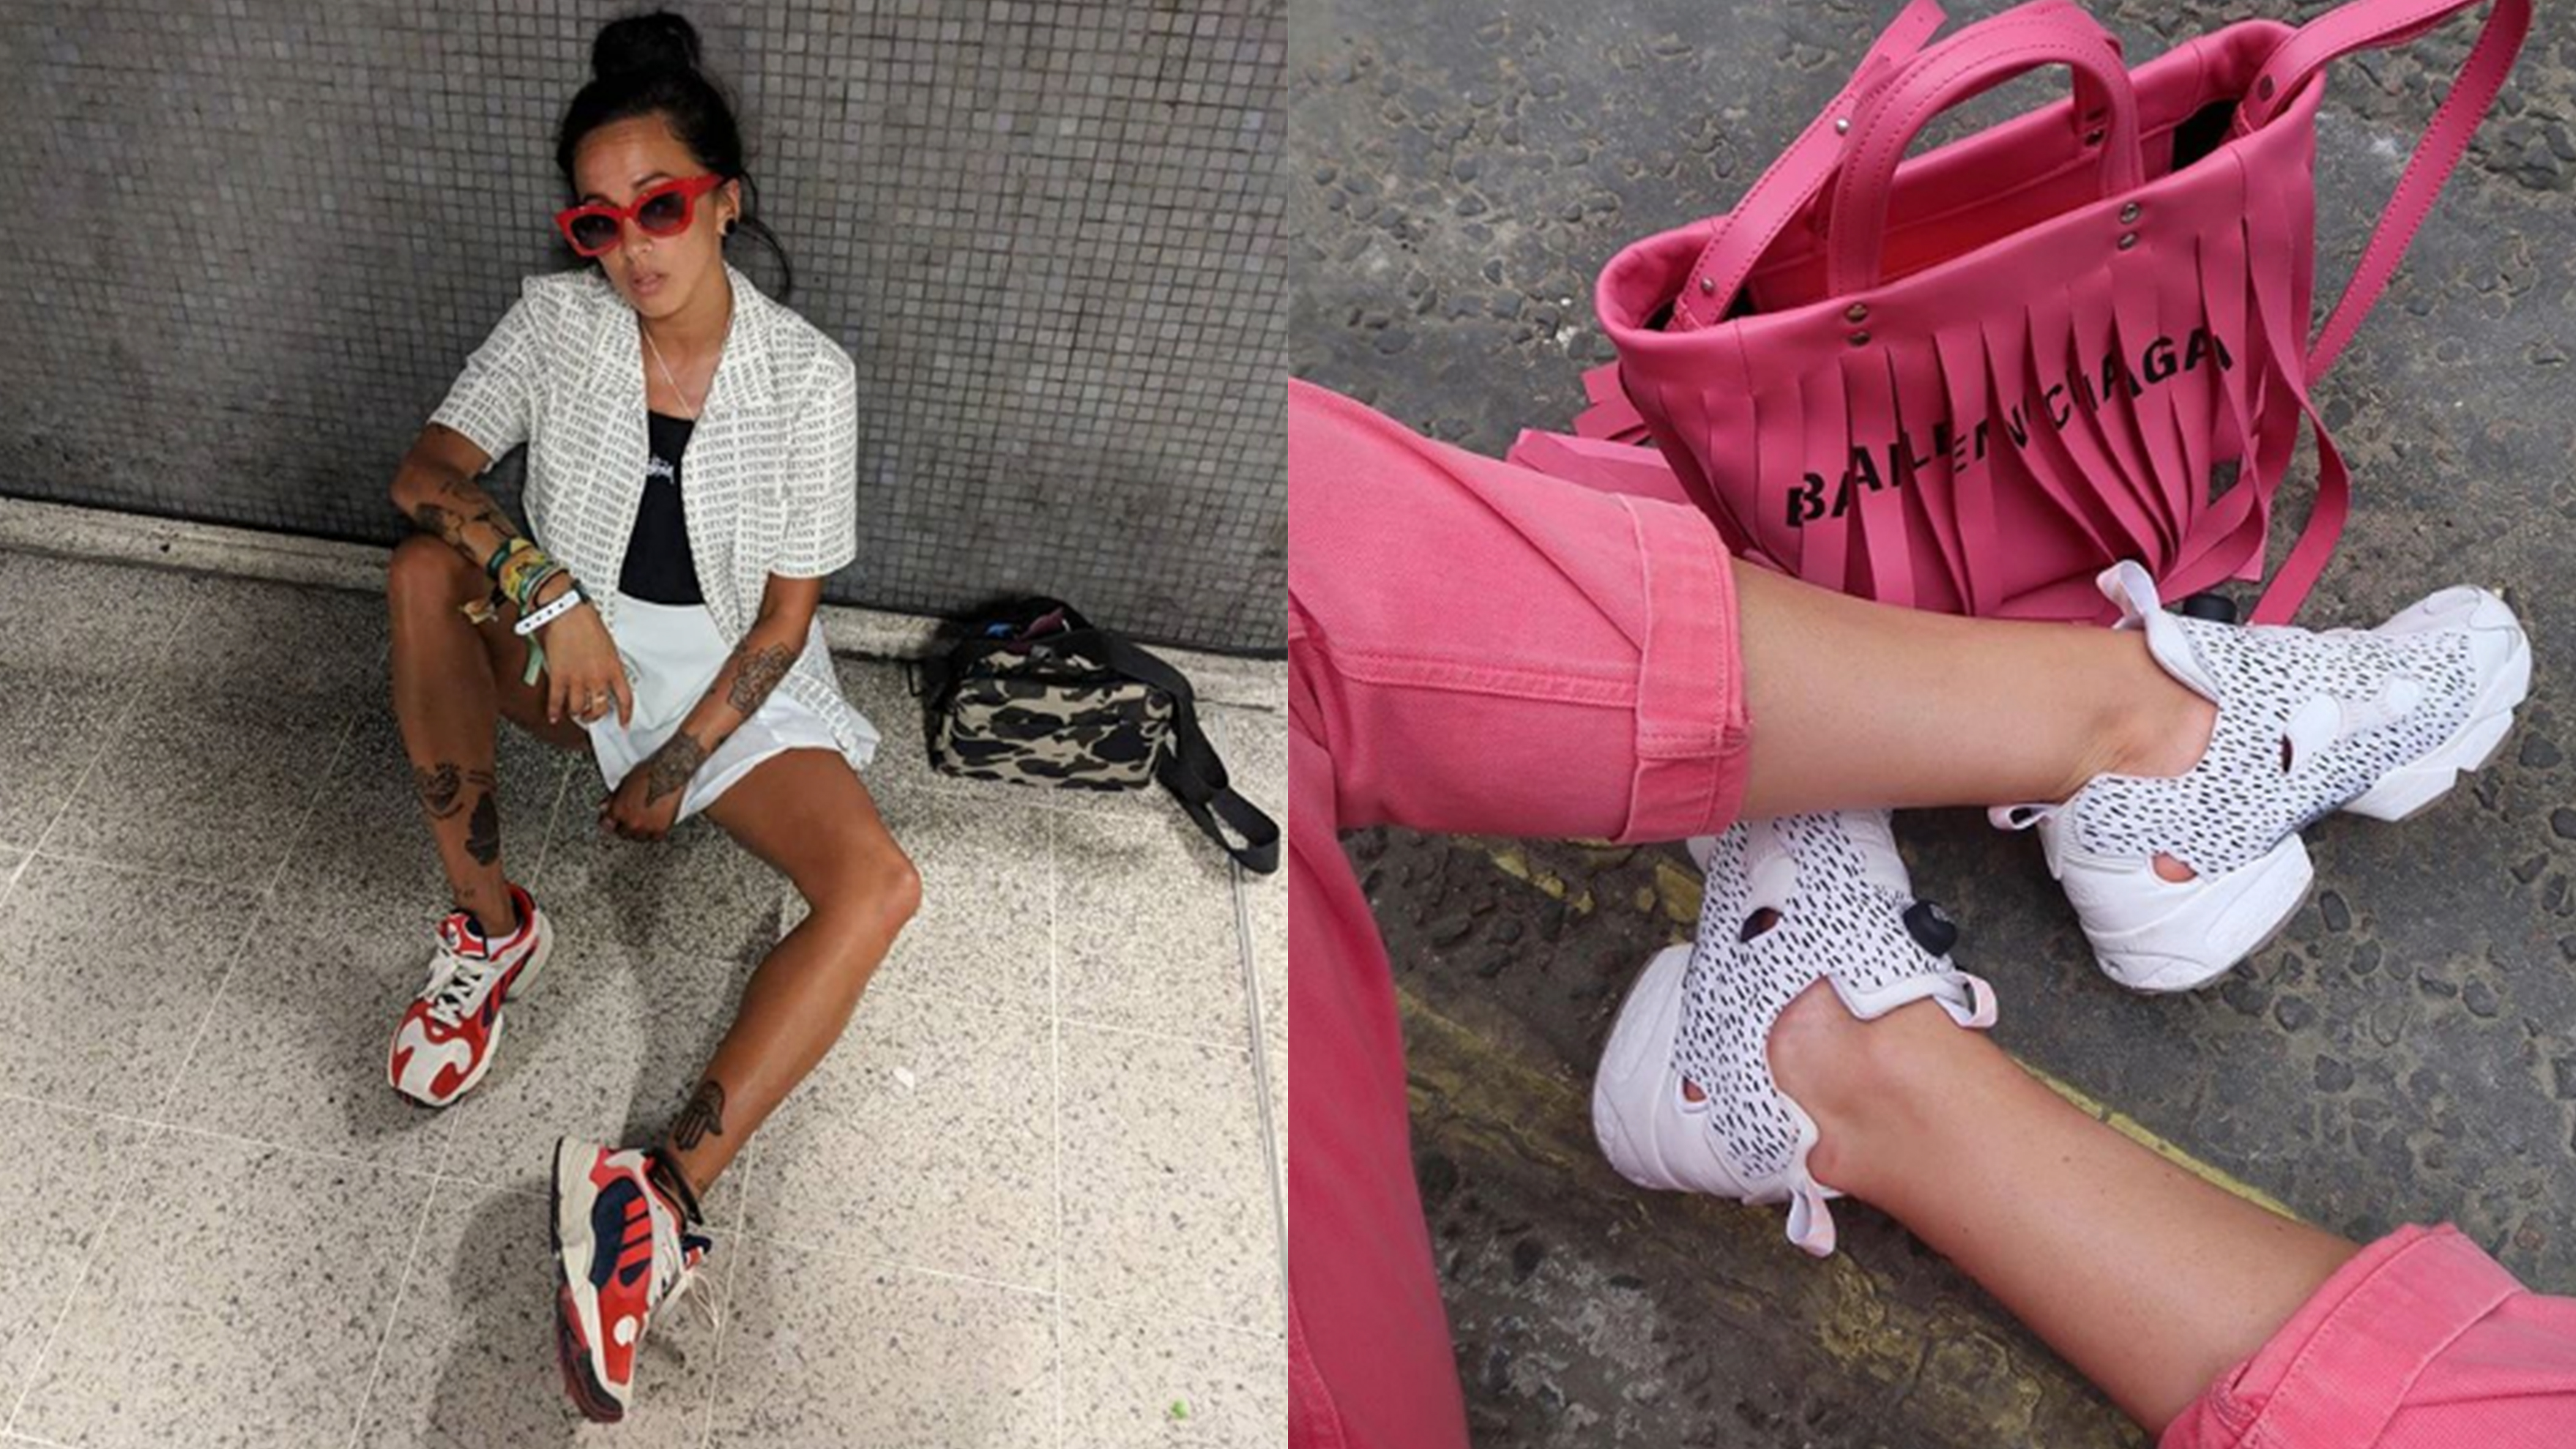 728d94c53 cozy girls explain how you can stay cool in this heat - i-D